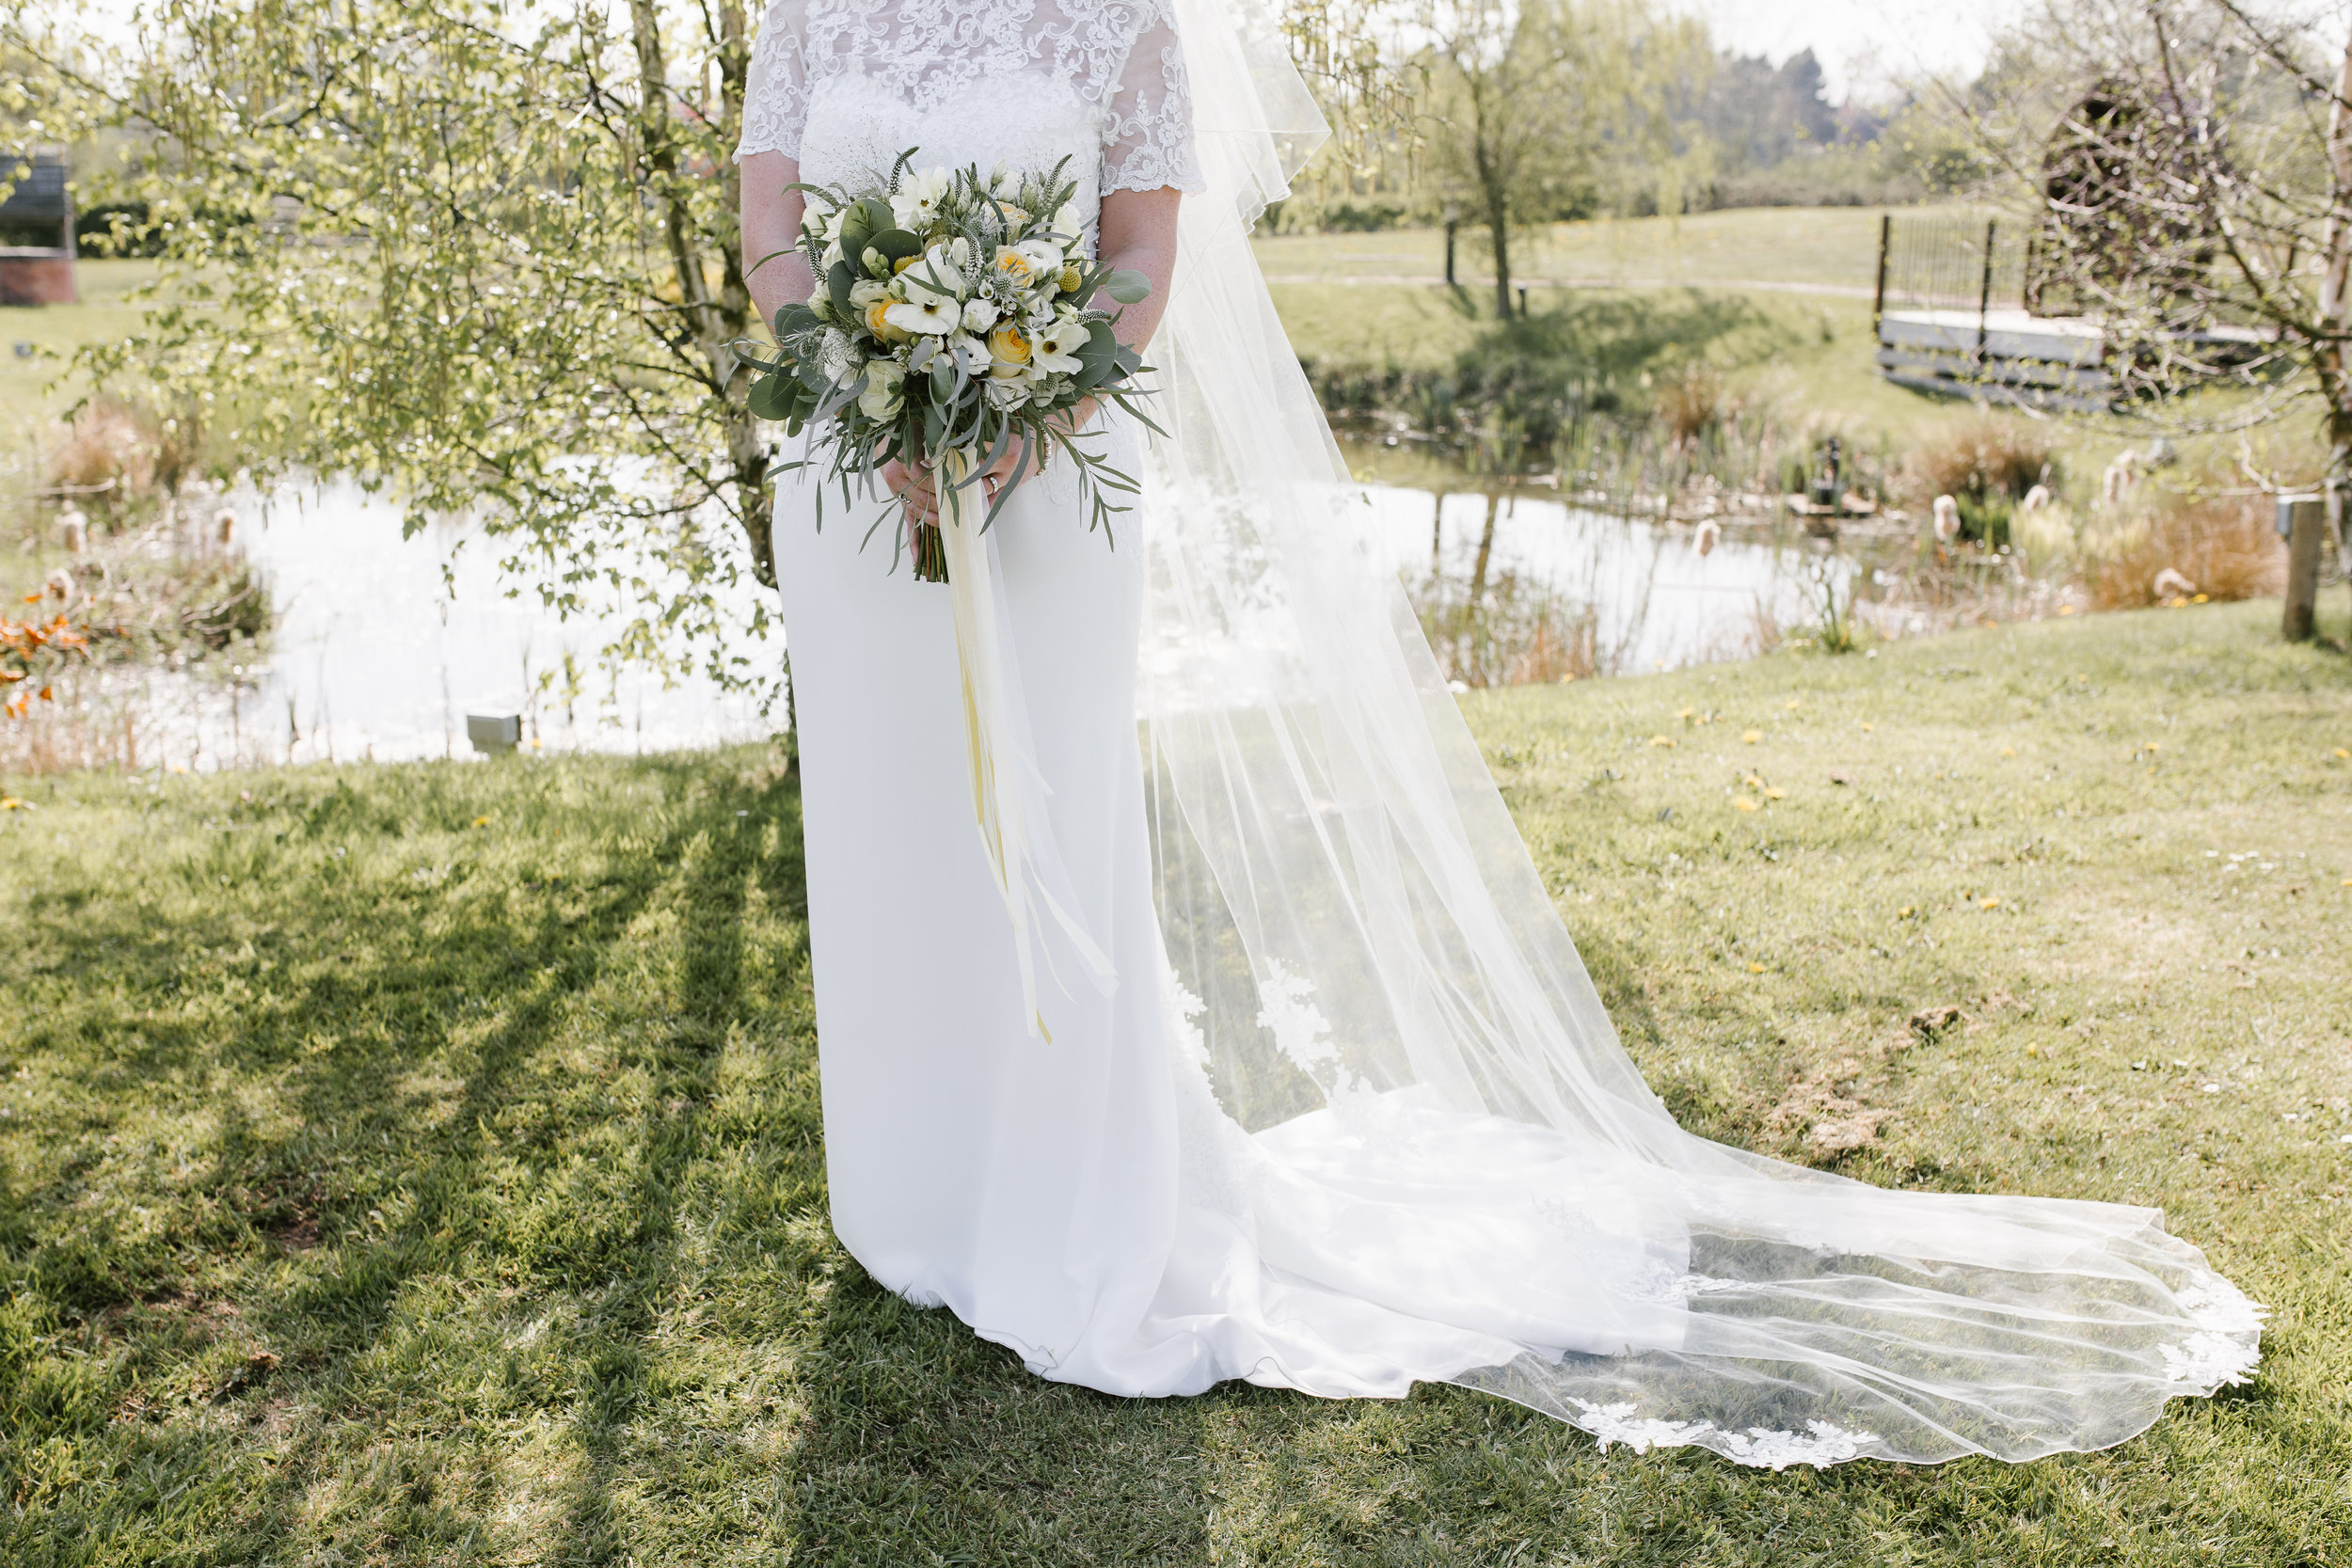 deatil photo of wedding florals and brides dress in the summer light